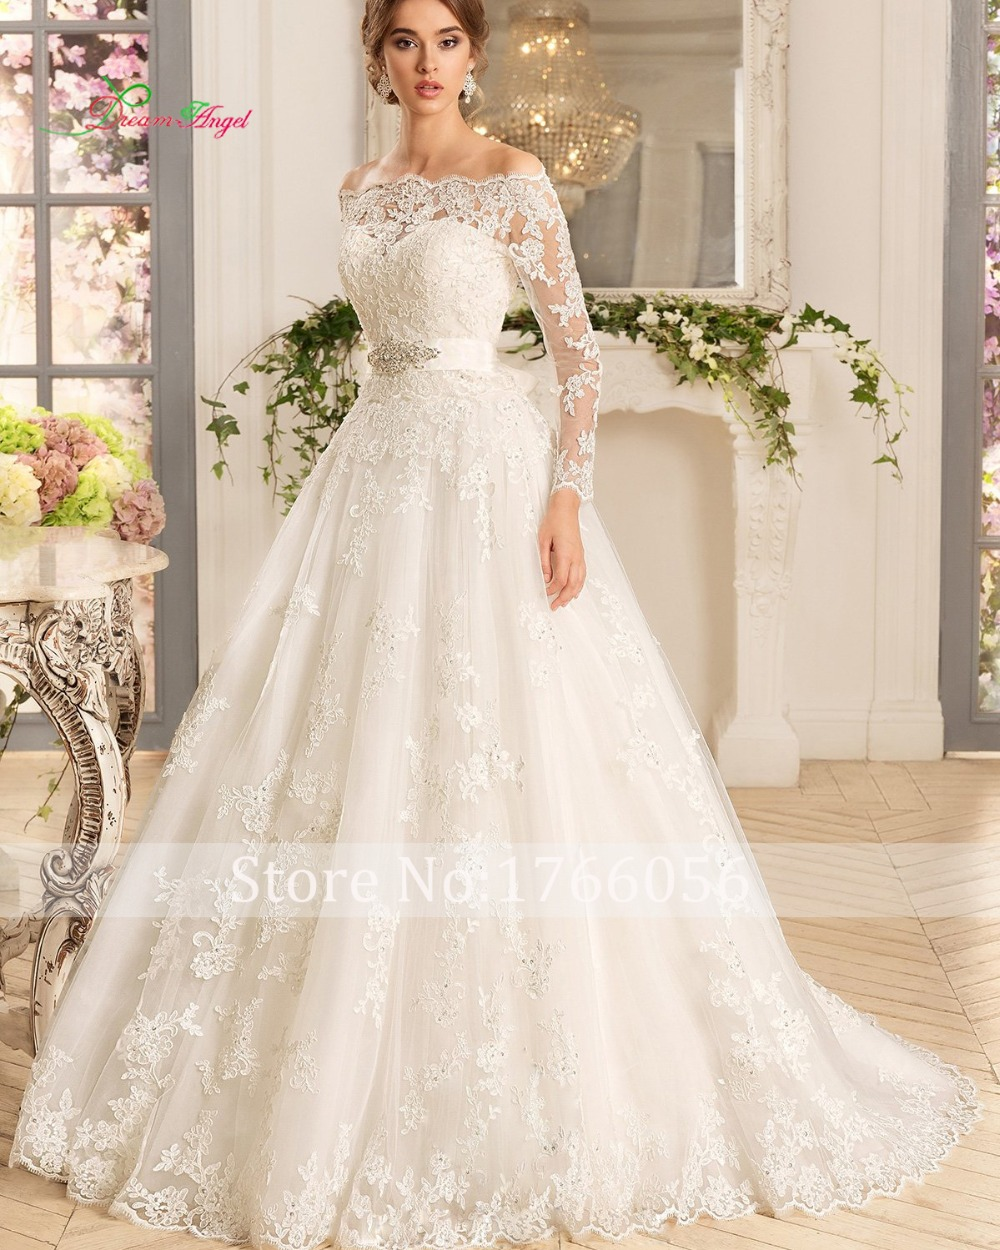 688f177e9d8 ... Mariee Crystal Beading Bridal Gown · New Designer Luxury Boat Neck Long  Sleeve Lace A Line Wedding Dress 2017 Cheap Appliques Beaded